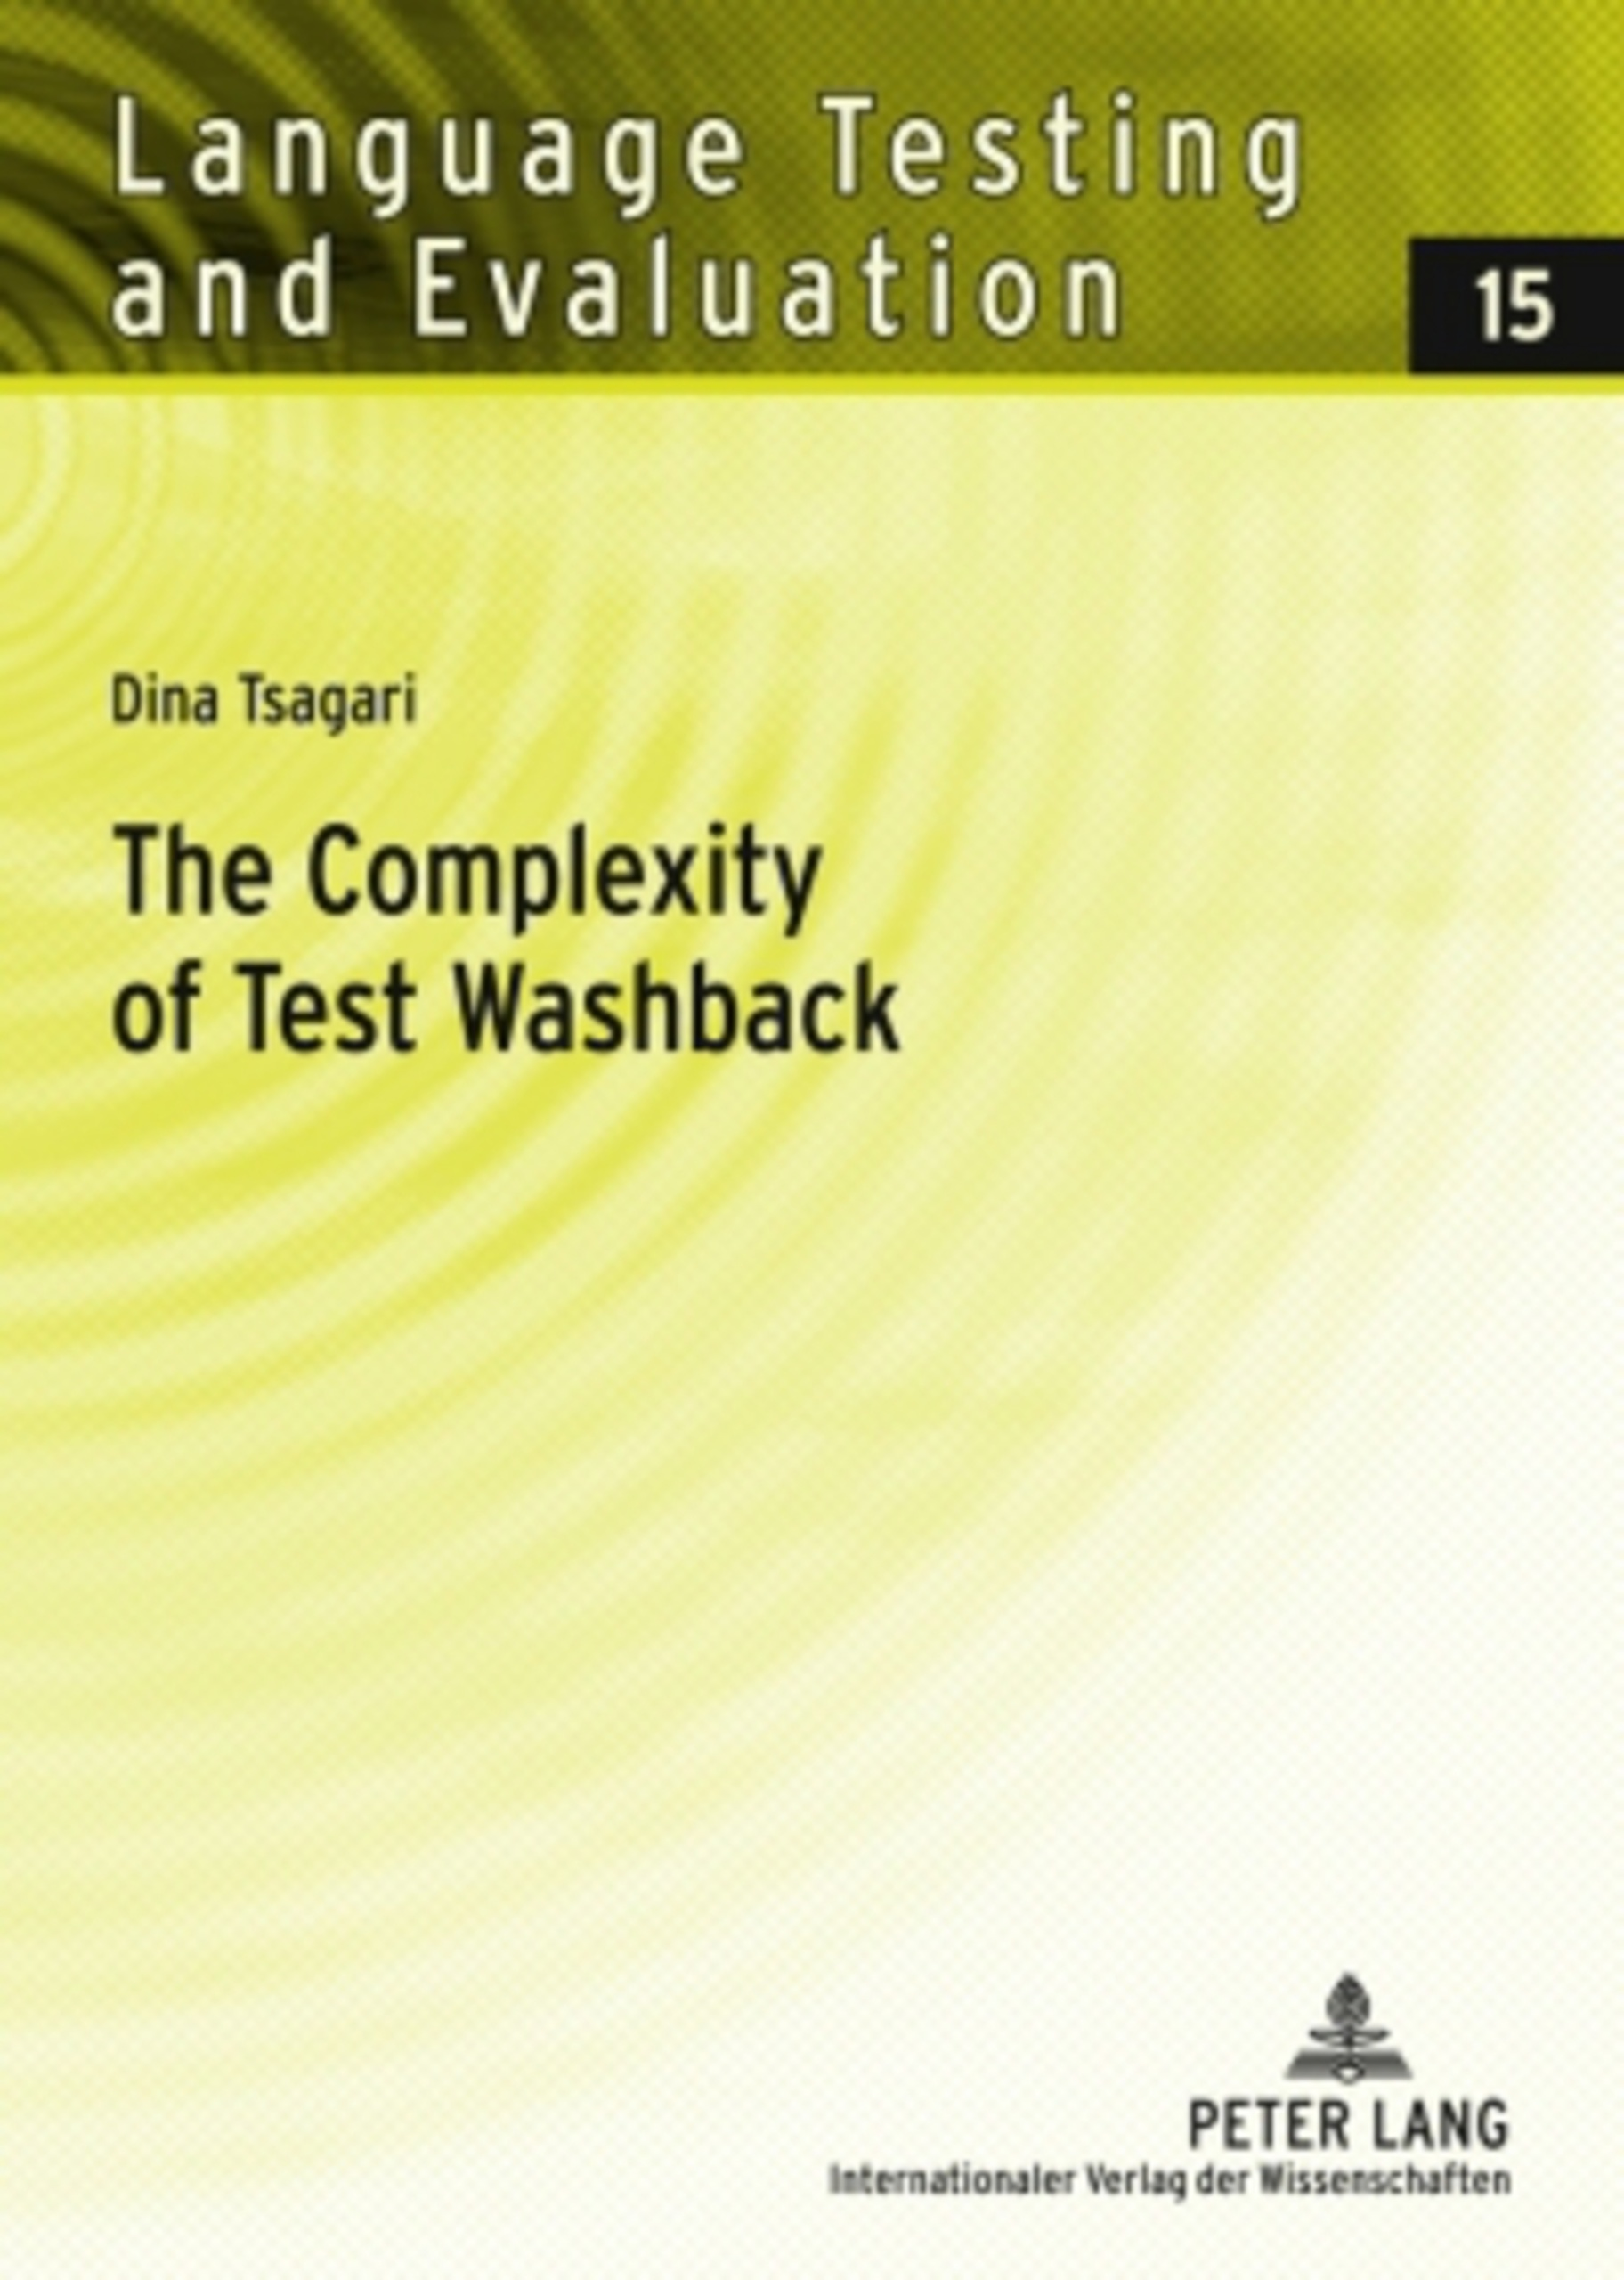 Title: The Complexity of Test Washback